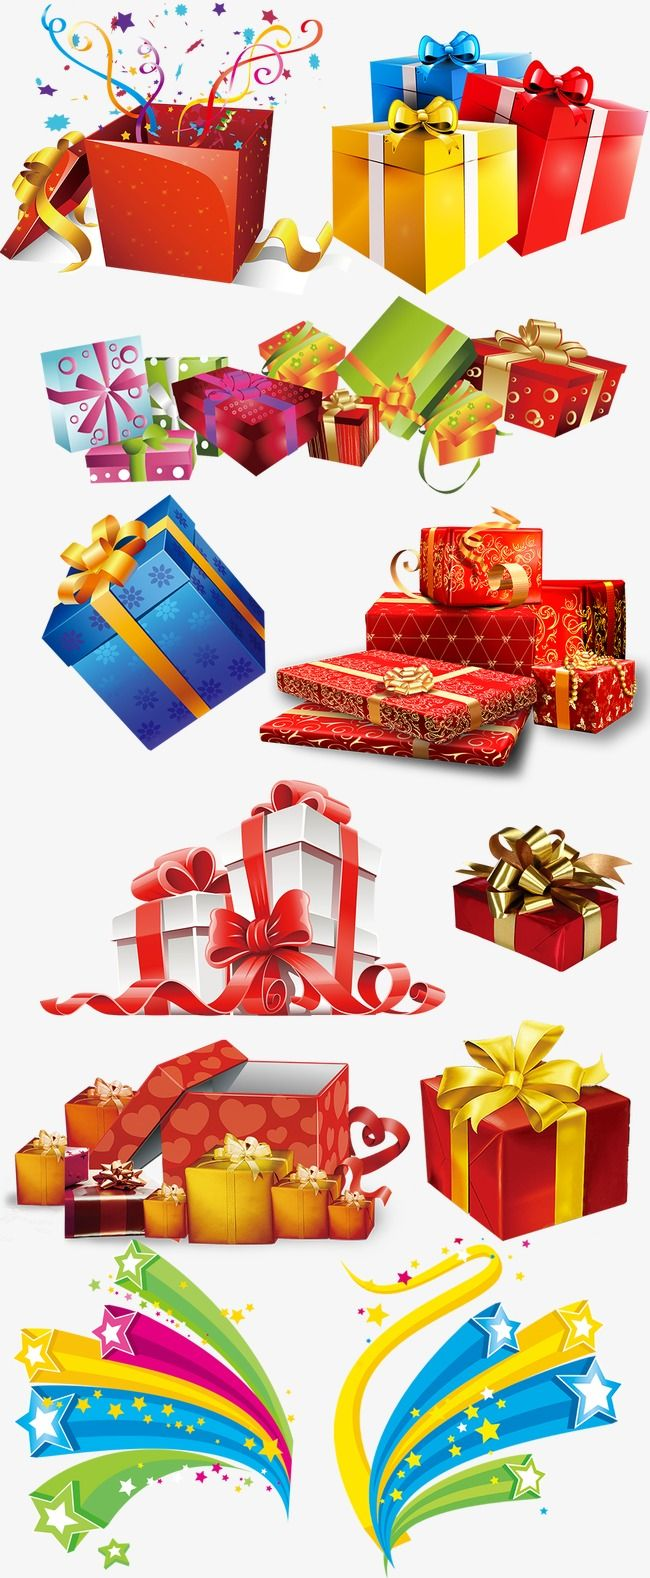 Colored Colorful Gift Gift Collection Colorful Gifts Gifts Gift Collections